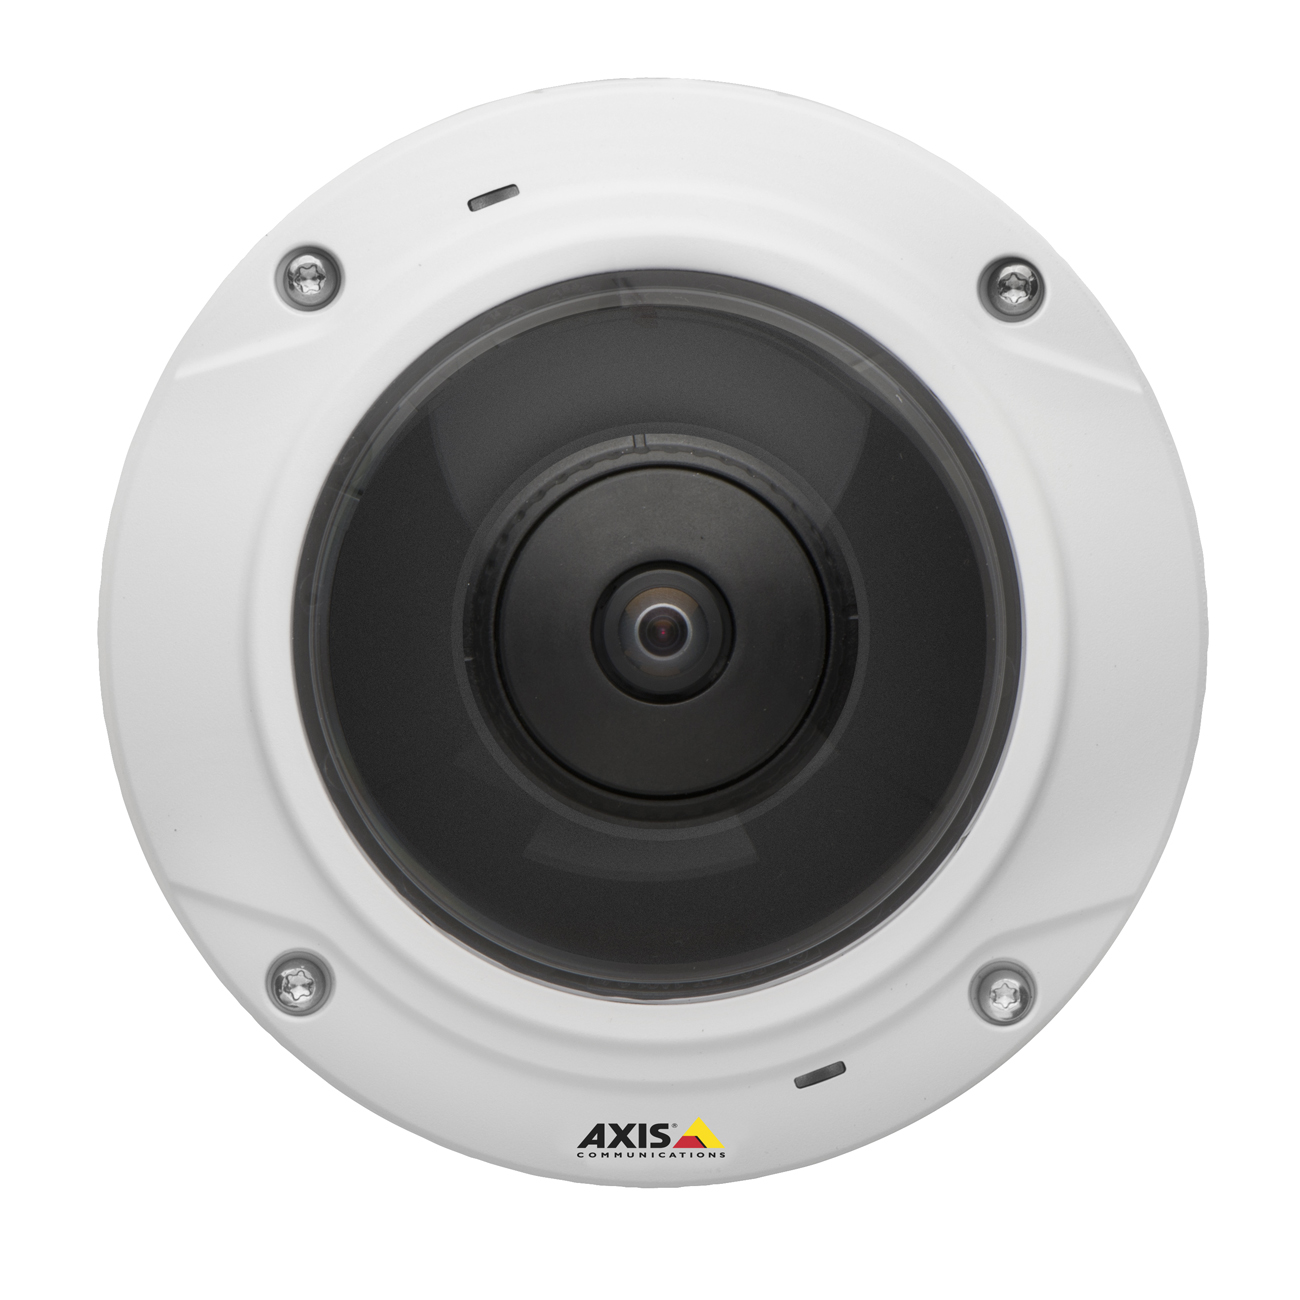 Axis 0515-001 M3007-pv Compact 360/180 Quad And